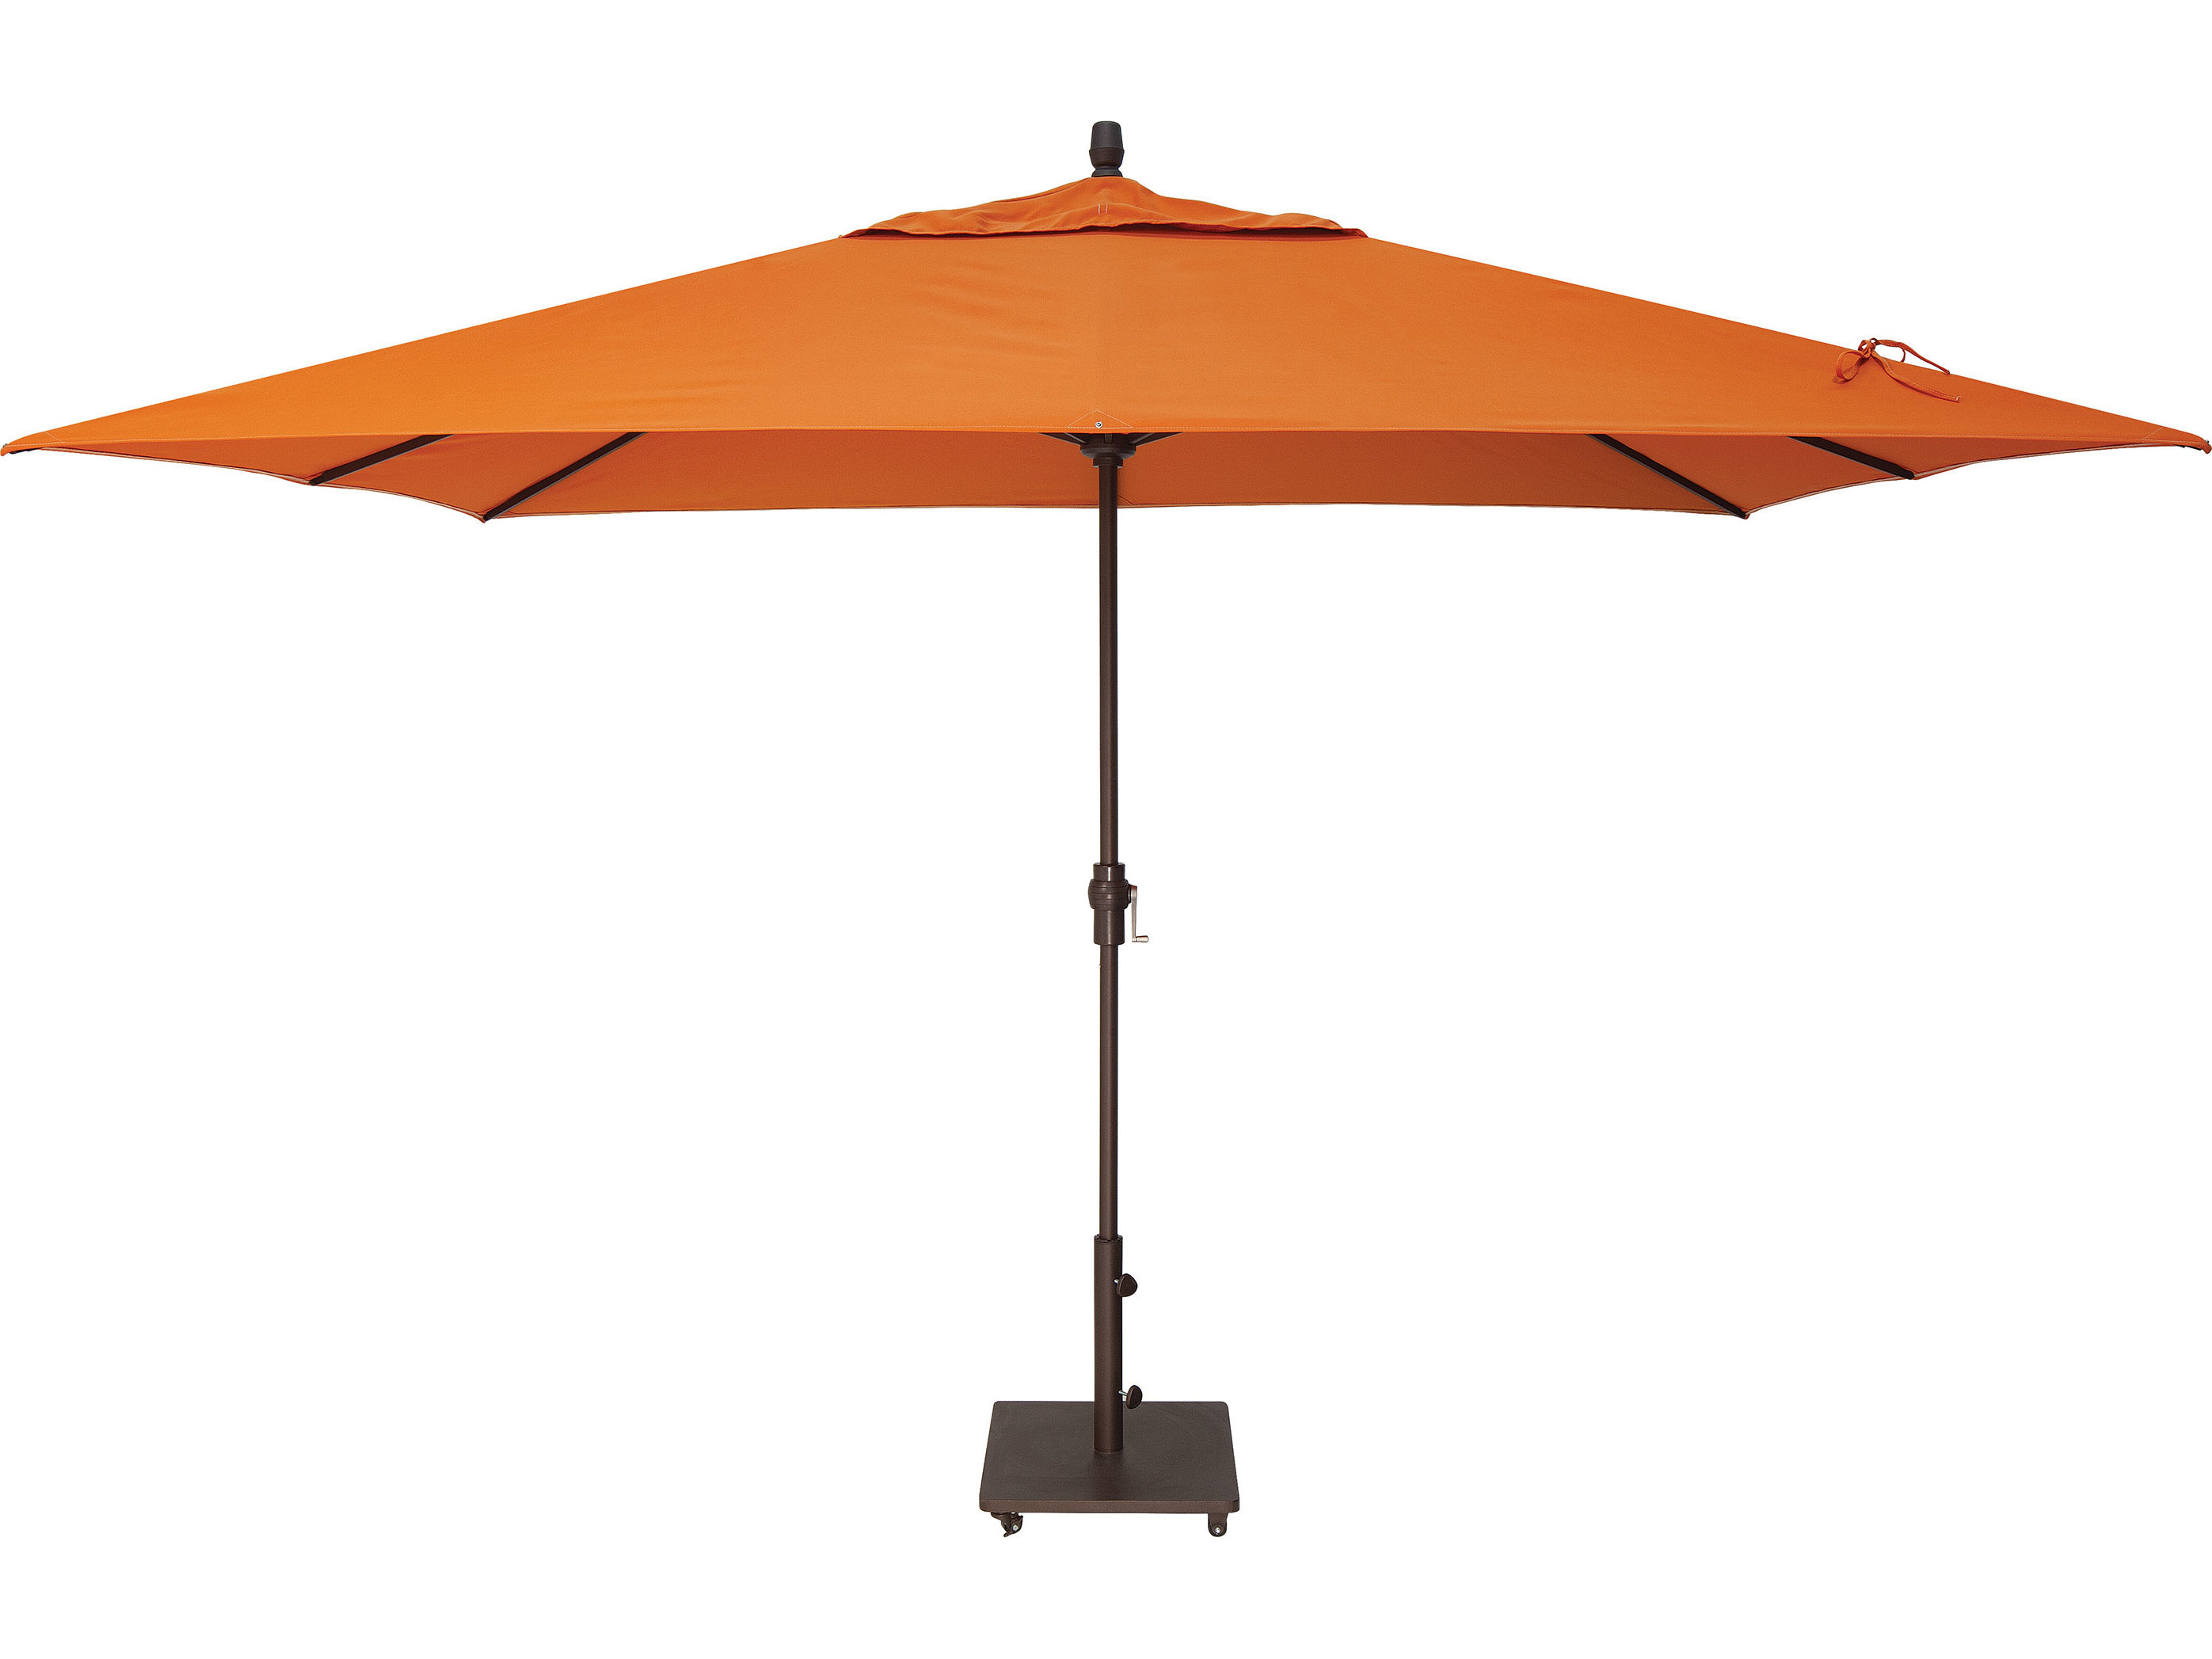 market aluminum 8 39 x 11 39 crank lift rectangular umbrella um8811rt